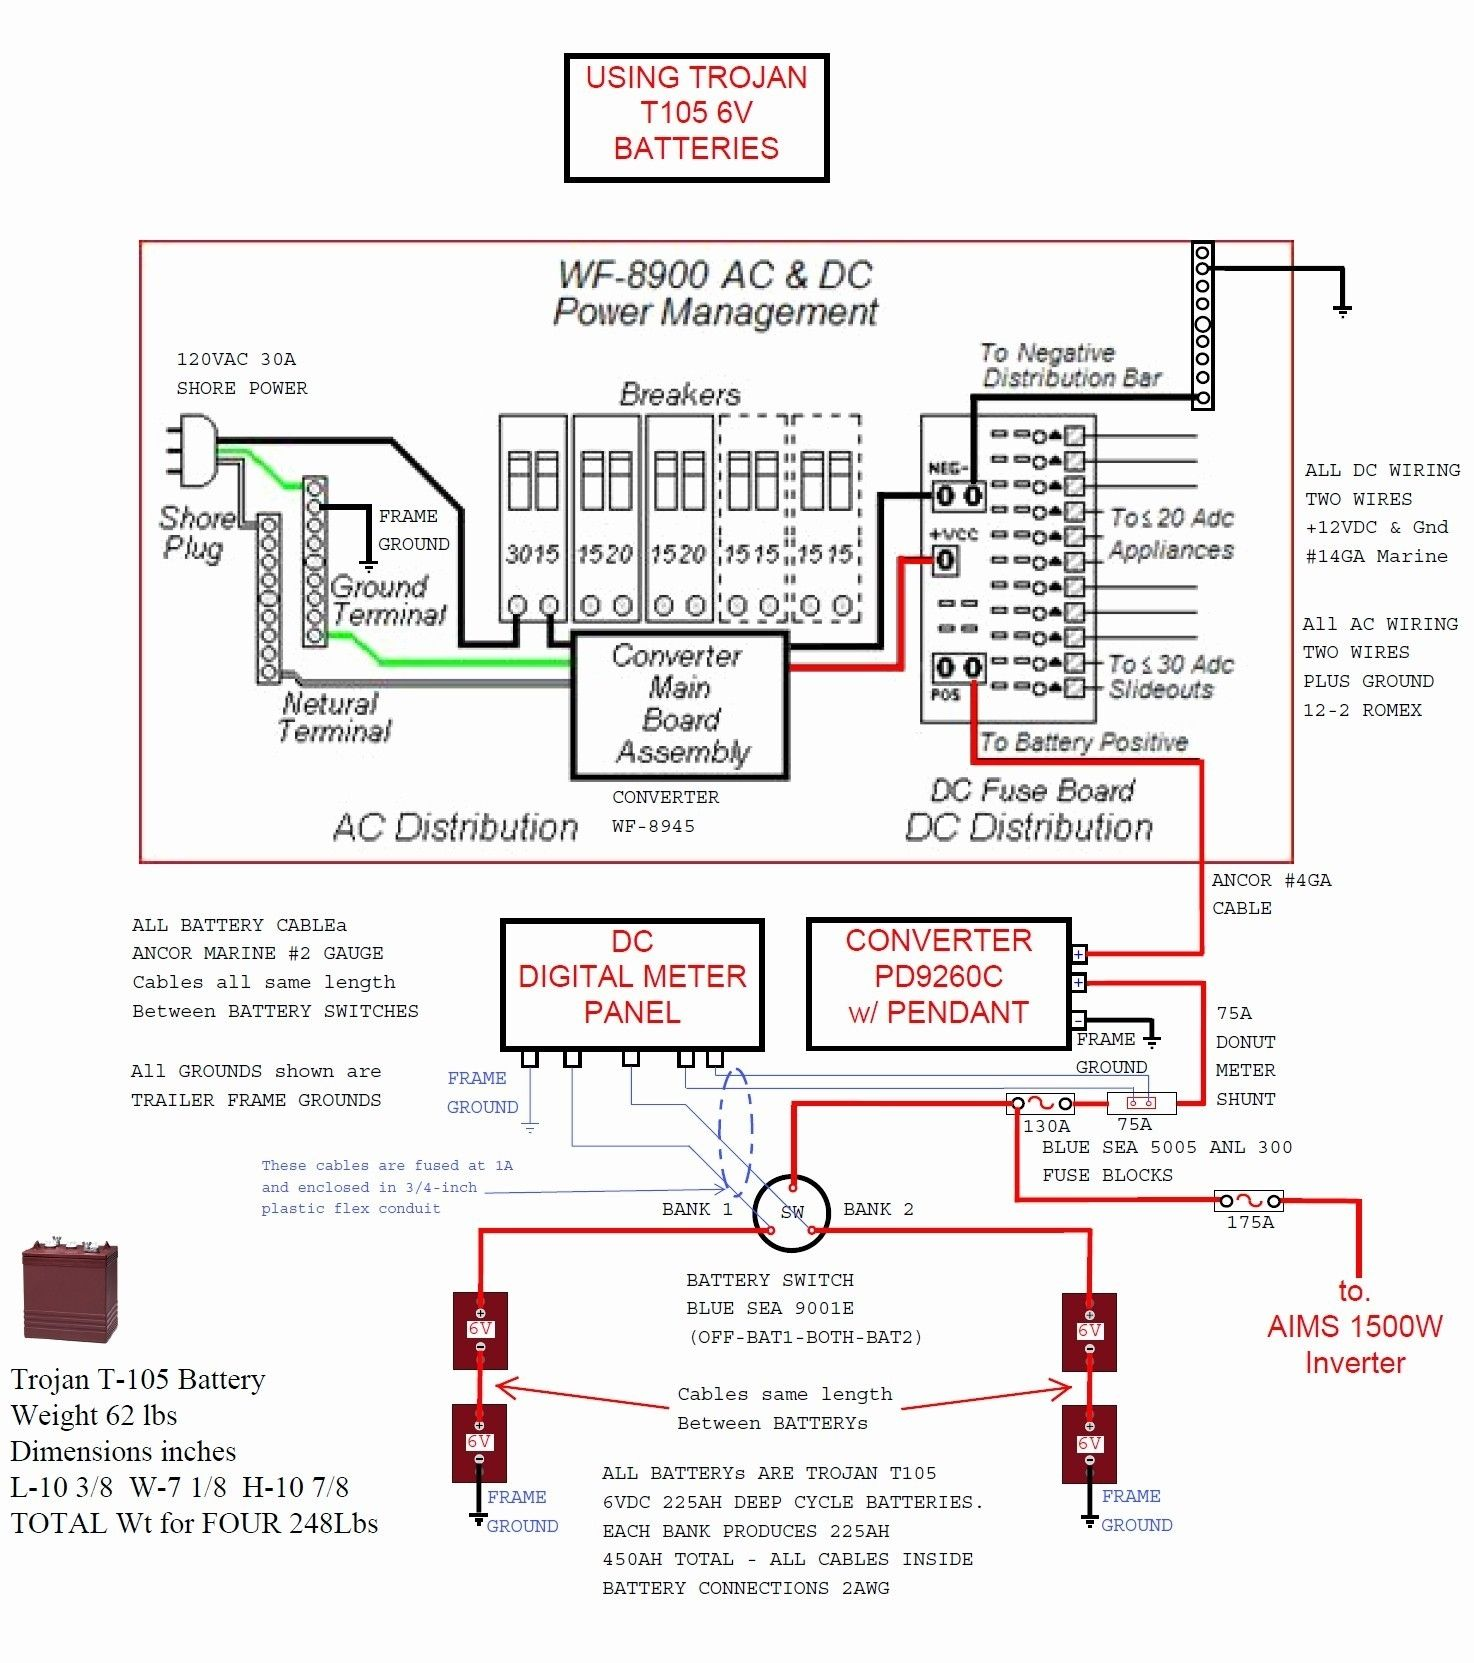 Schematic Winnebago Motorhome Wiring Diagram from static-cdn.imageservice.cloud